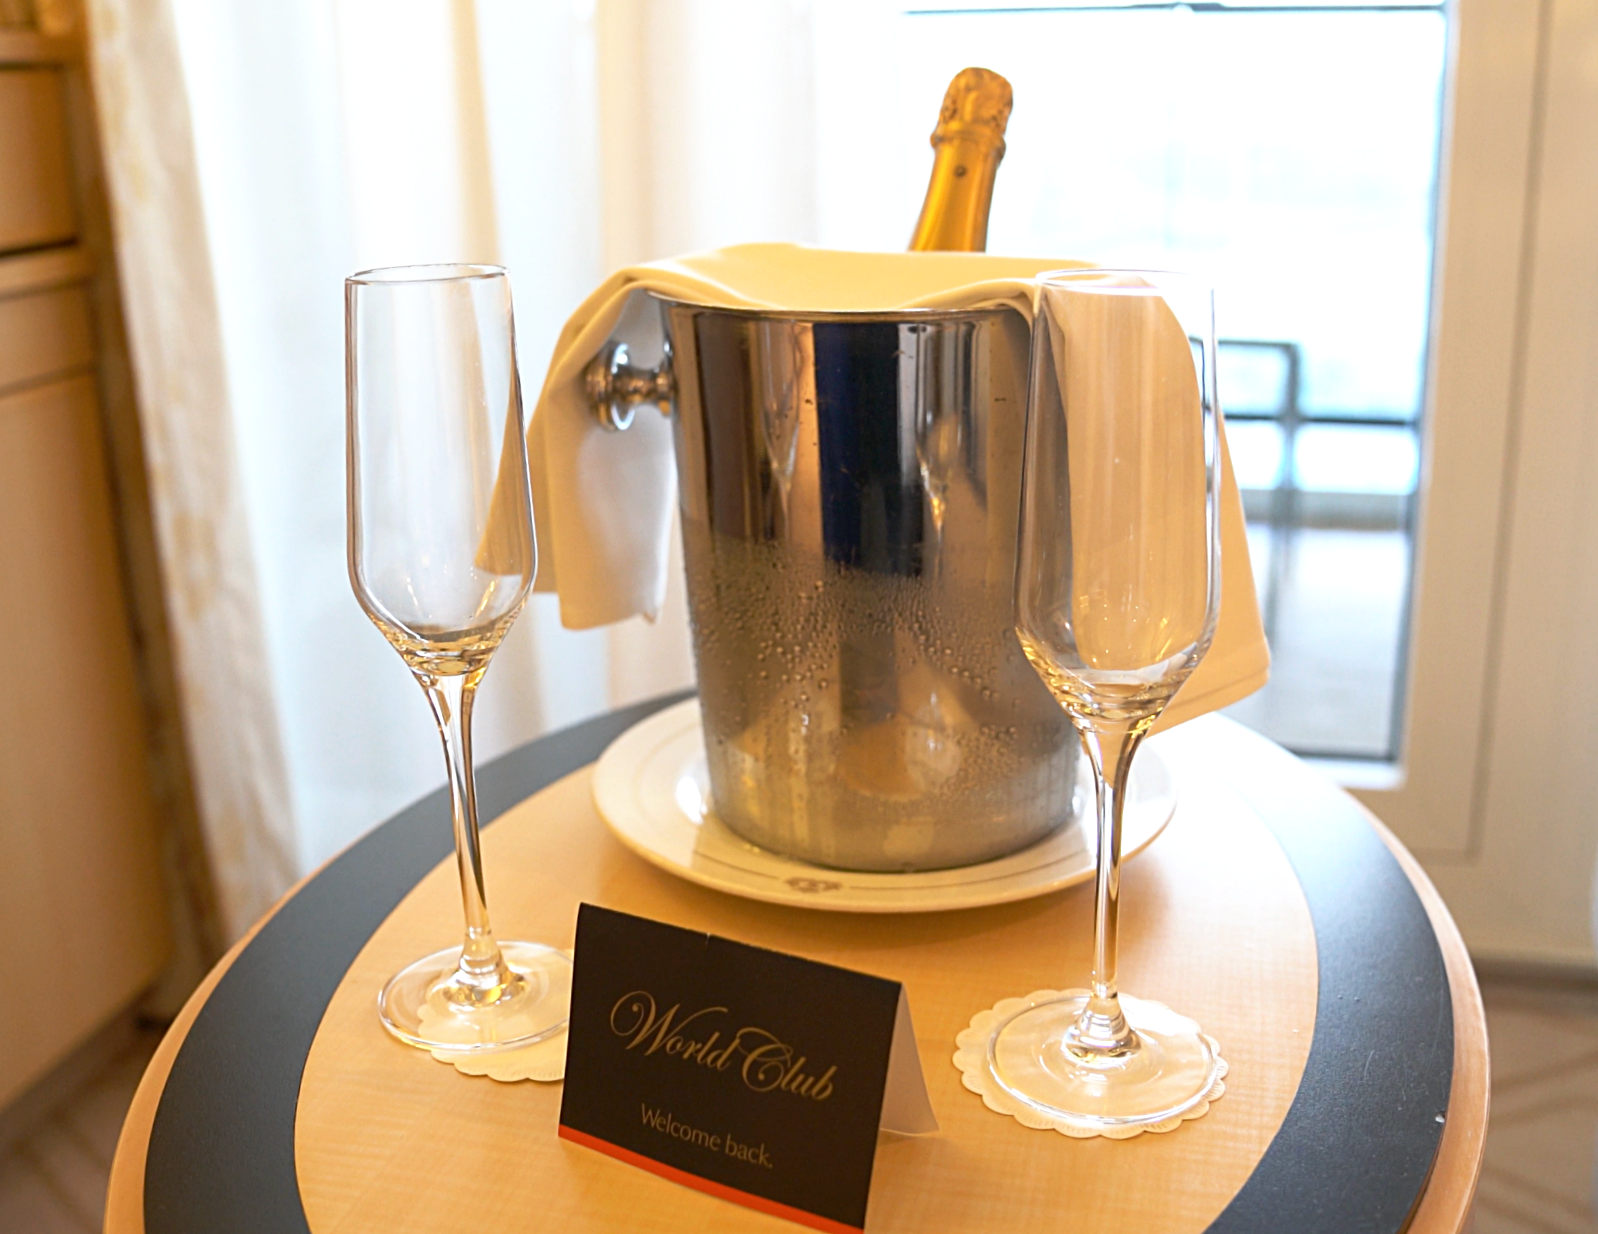 There really is no better sight than the Welcome Back ice bucket and champagne glasses!